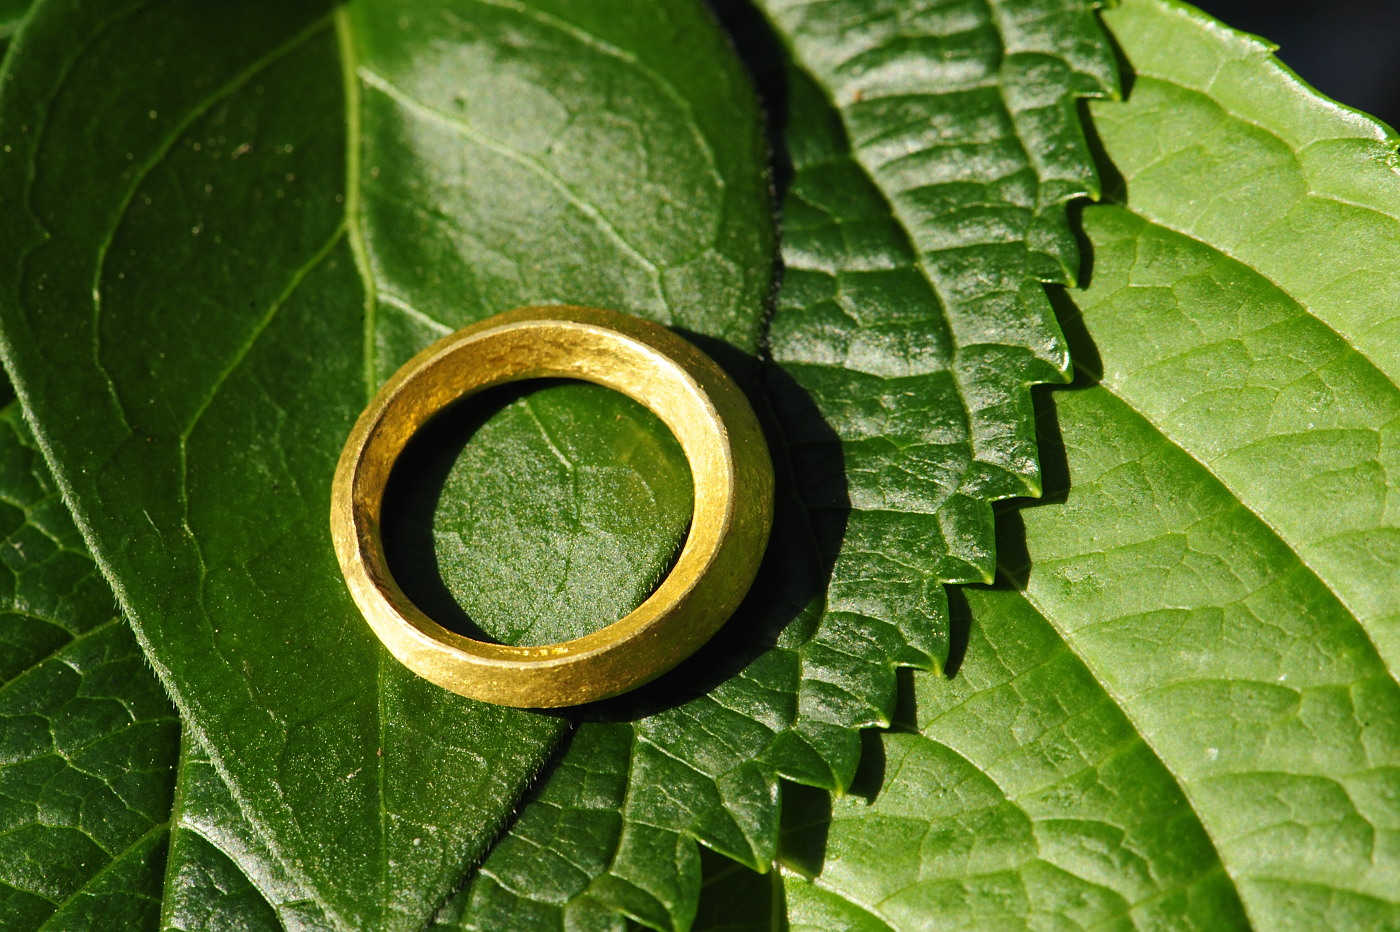 hand forged in 24k gold, this is a shape I find fascinating.